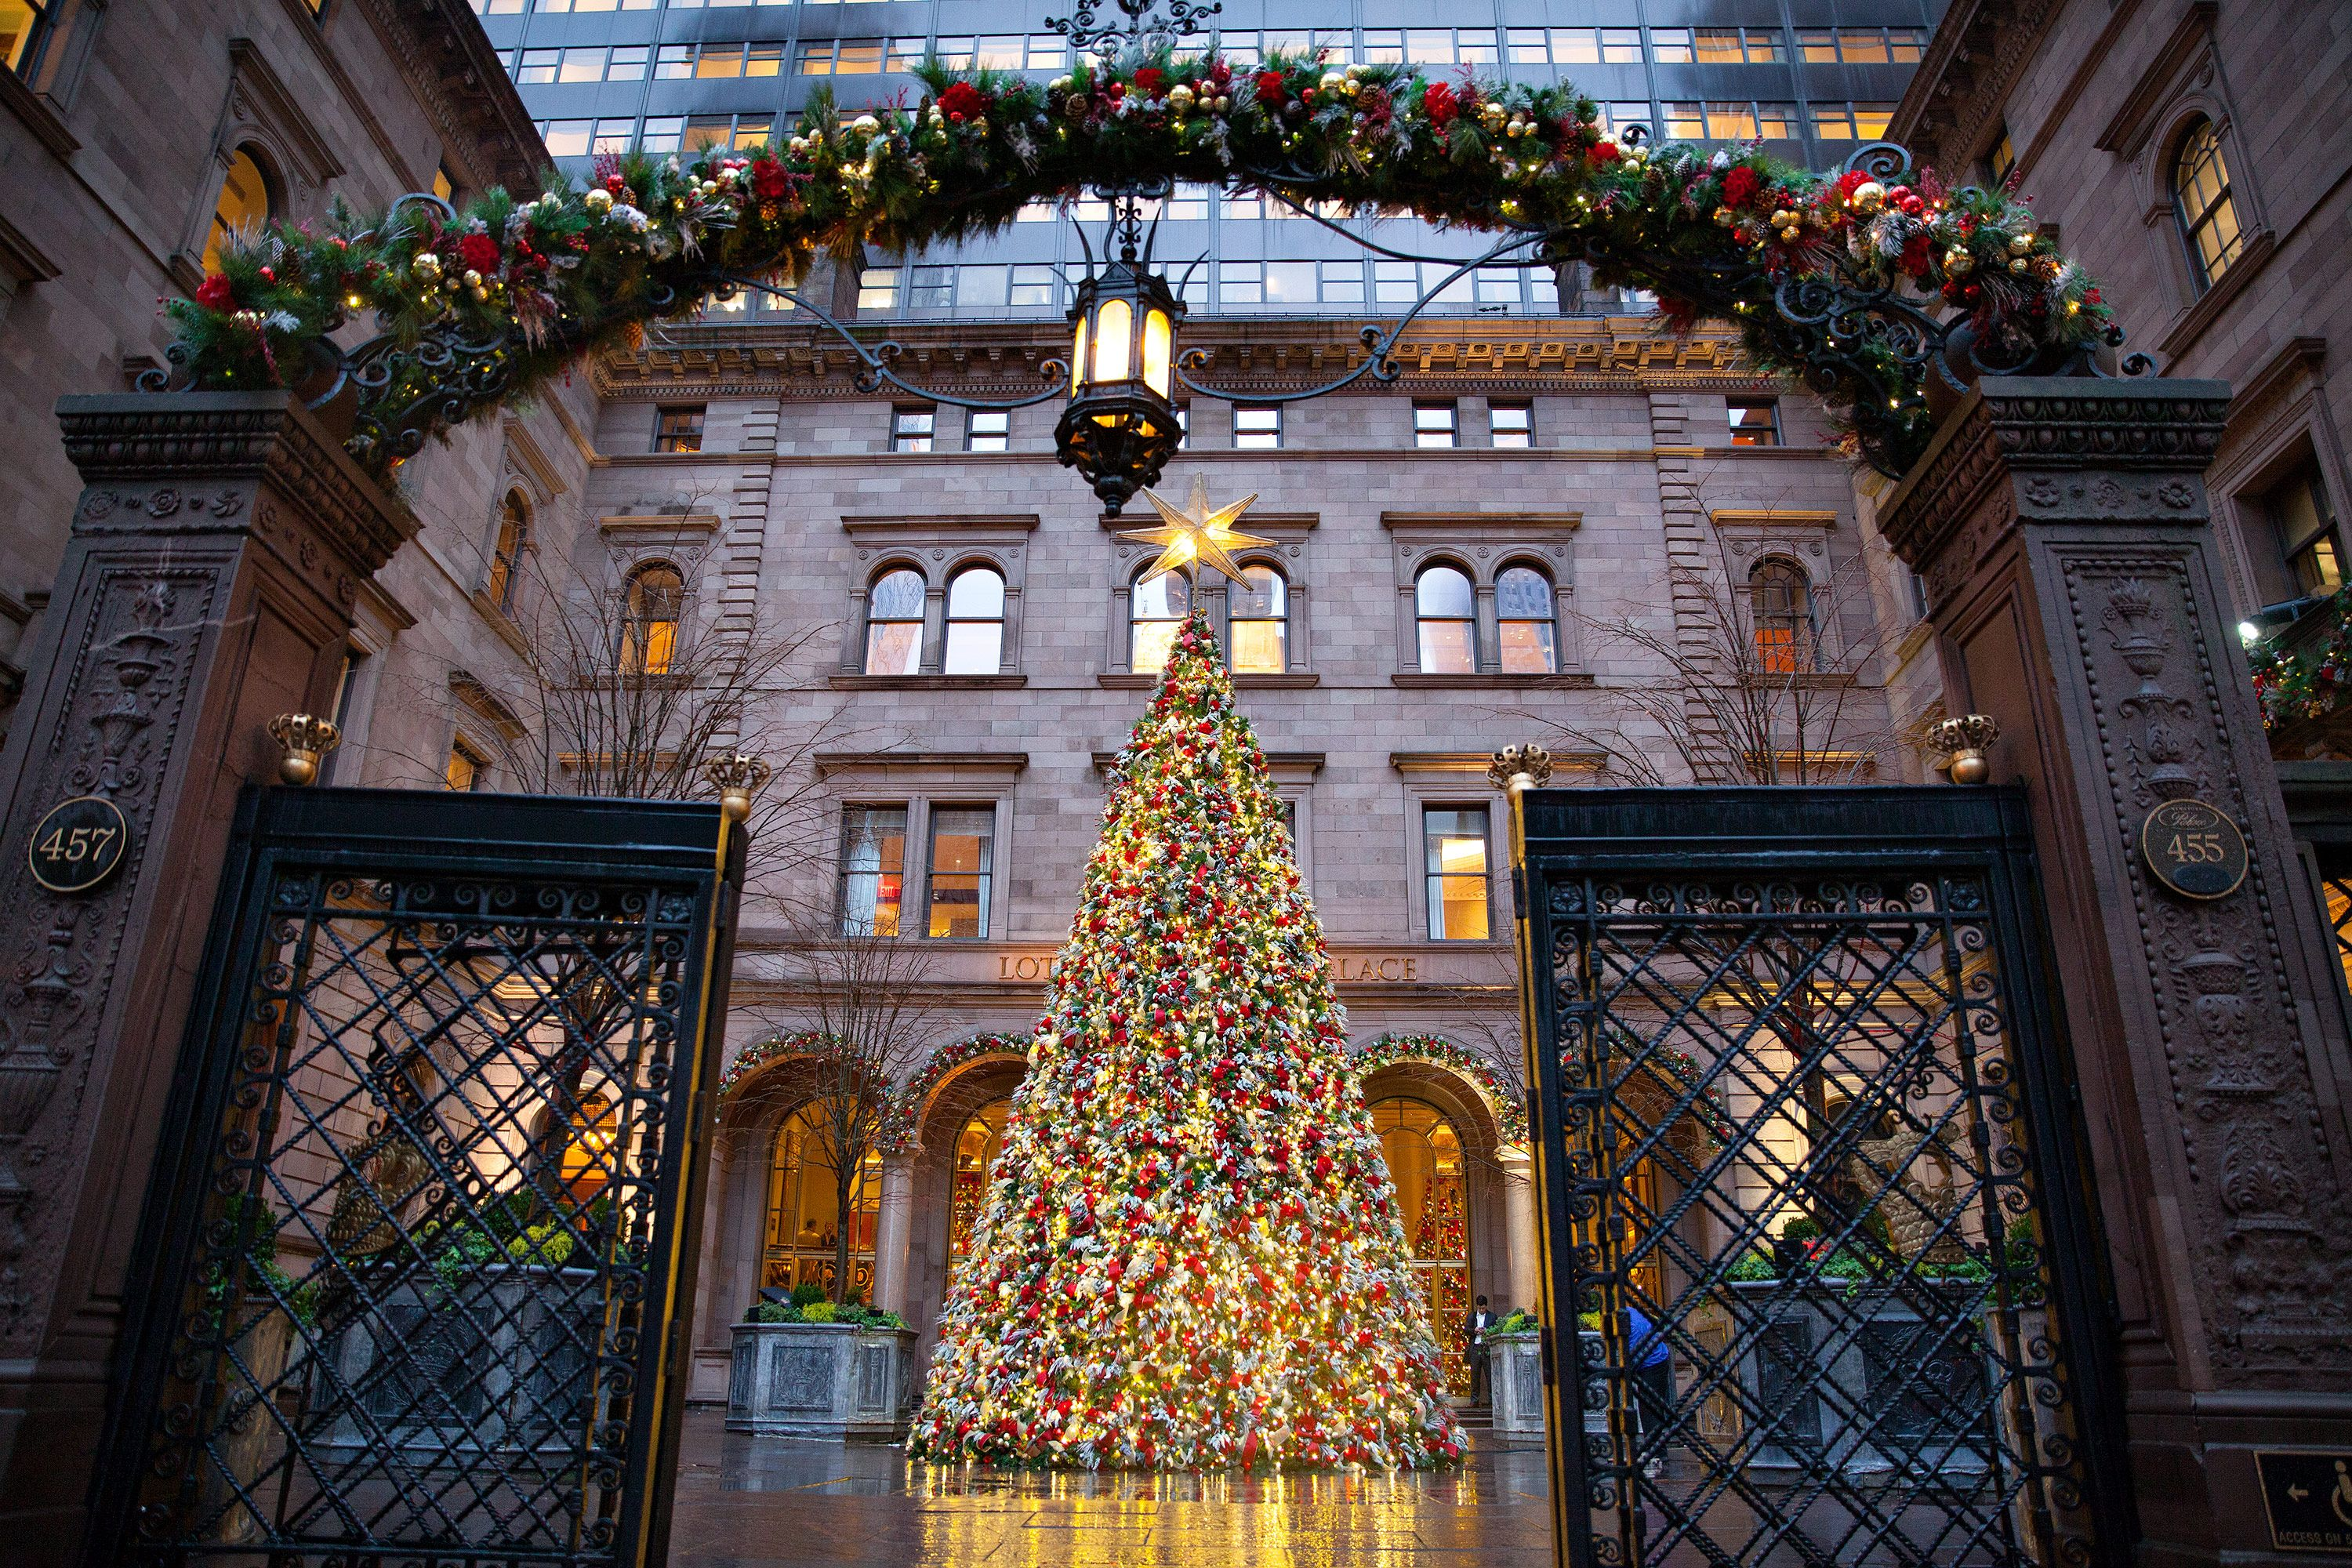 A National Geographic Travel photo editor visited New York City to capture its glittering holiday lights. Here are his top photo tips.